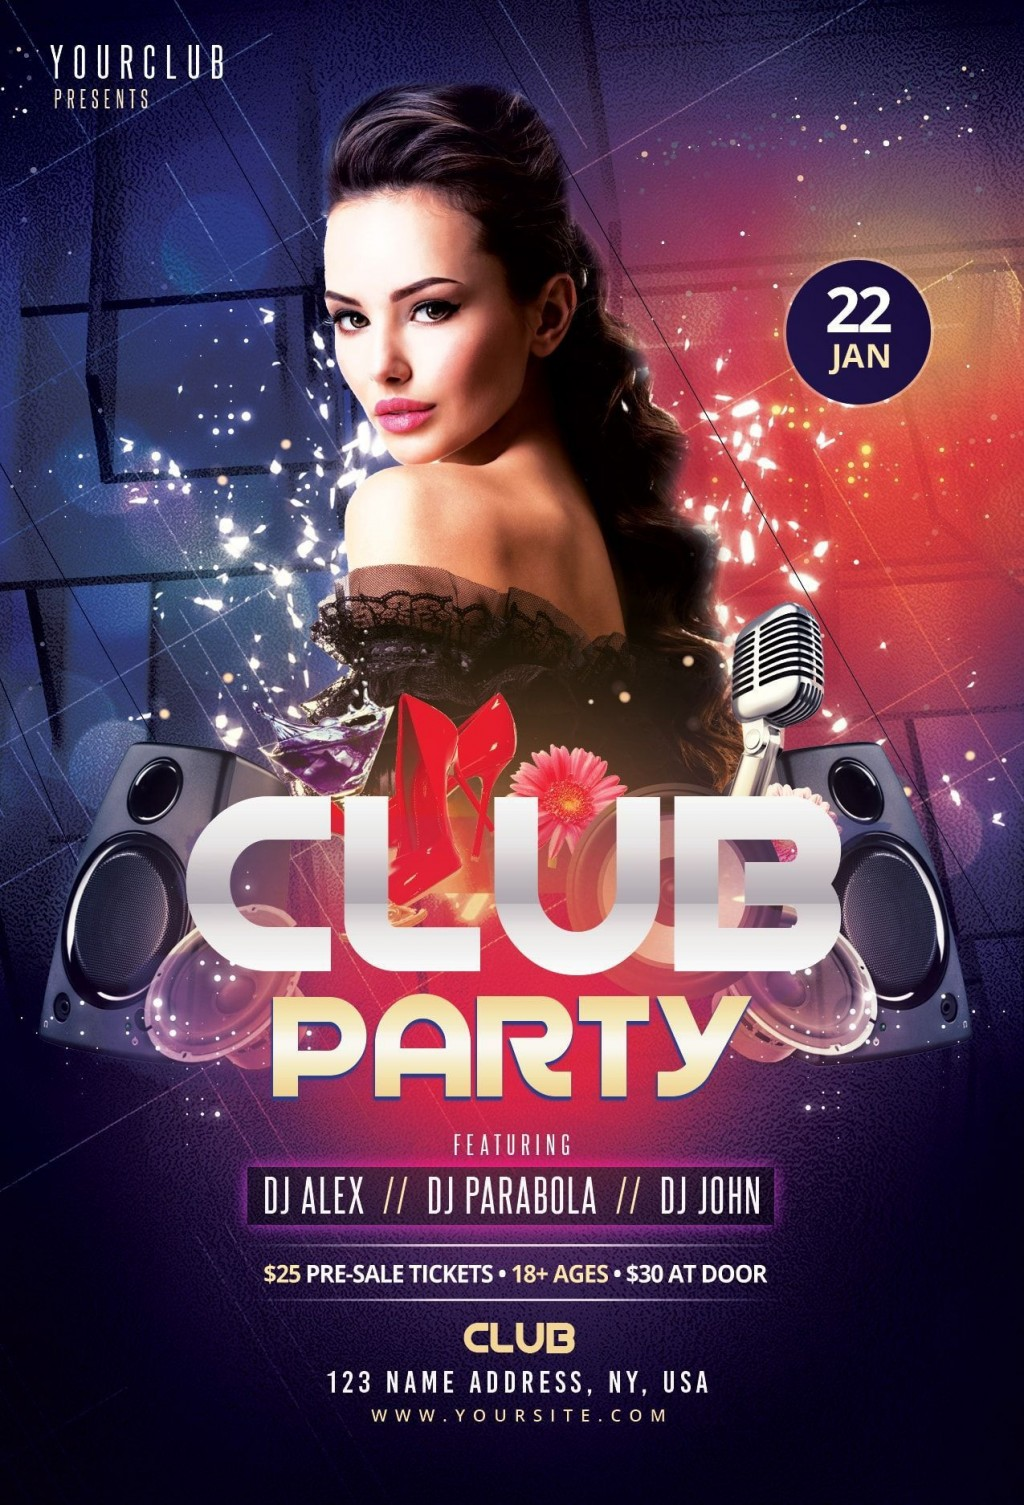 006 Unforgettable Club Party Flyer Template Free Concept Large